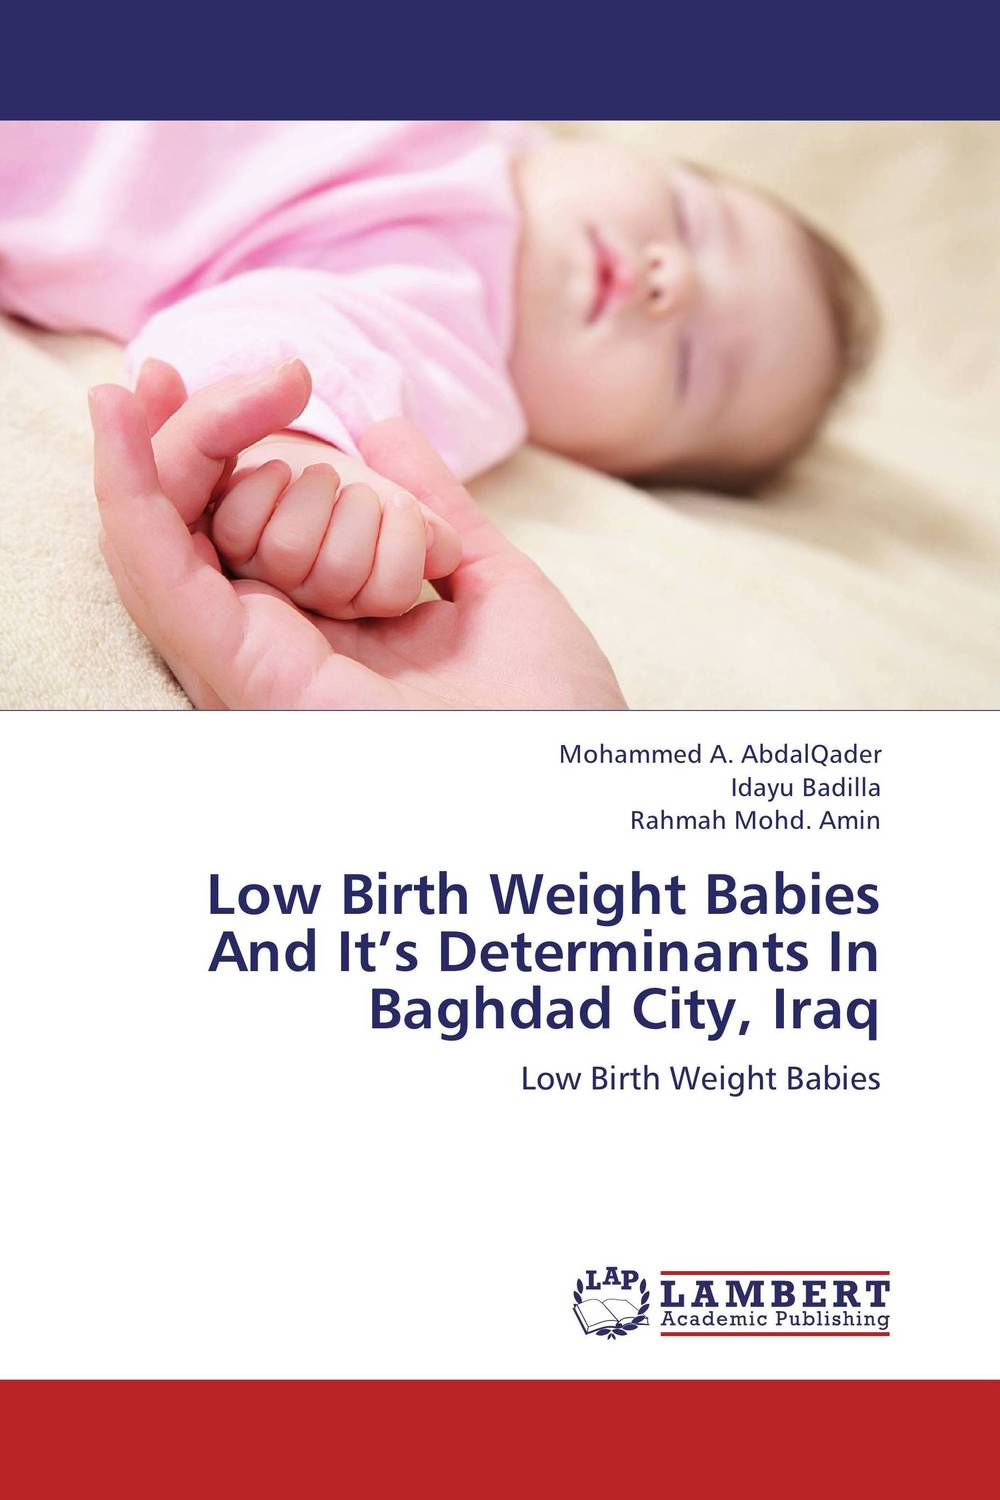 Low Birth Weight Babies And It's Determinants In Baghdad City, Iraq manjari singh introducing and reviewing preterm delivery and low birth weight